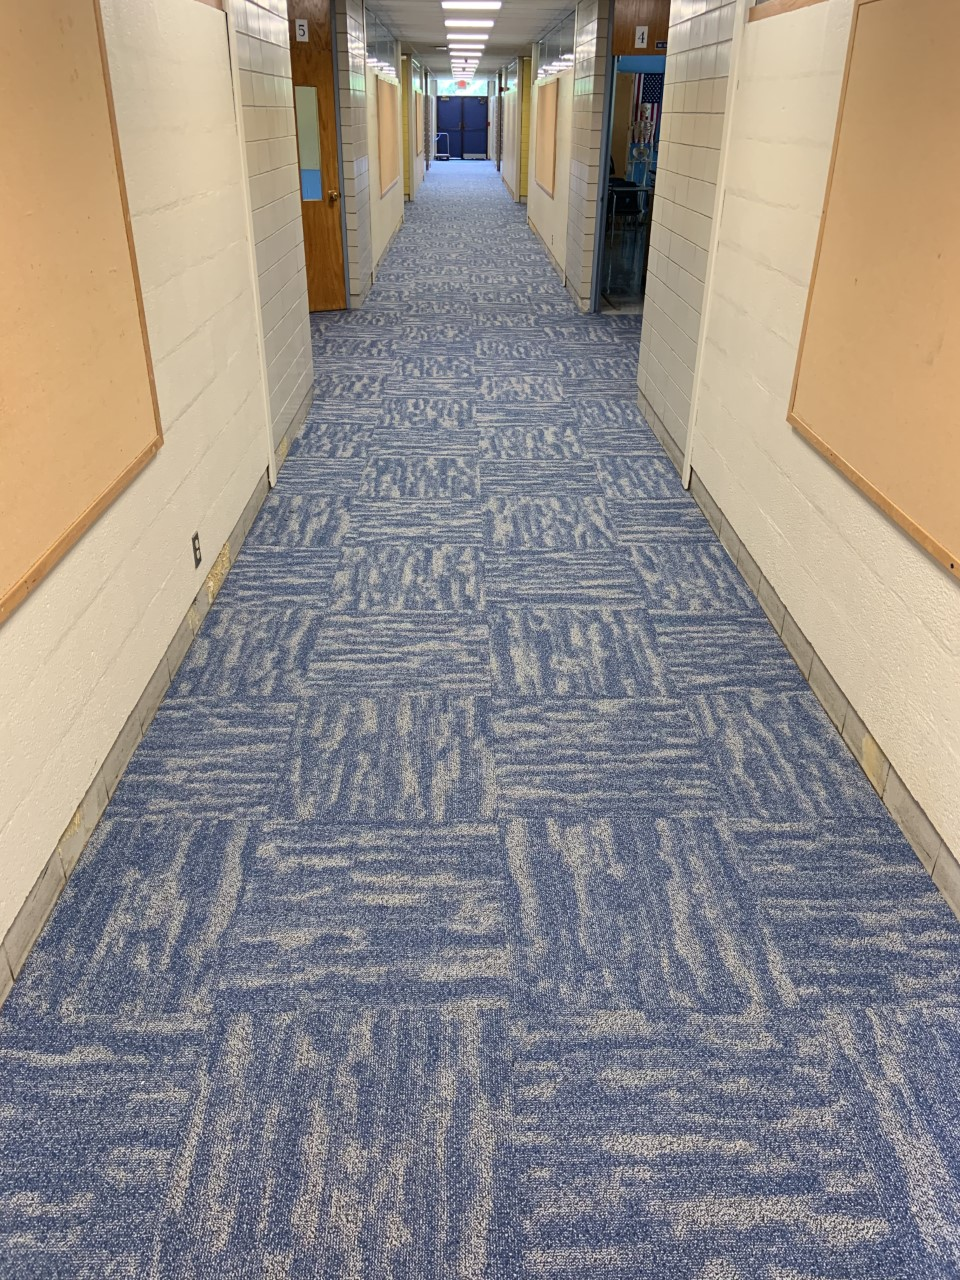 Follow the fresh carpeting to our six instructional spaces on this side of our school!